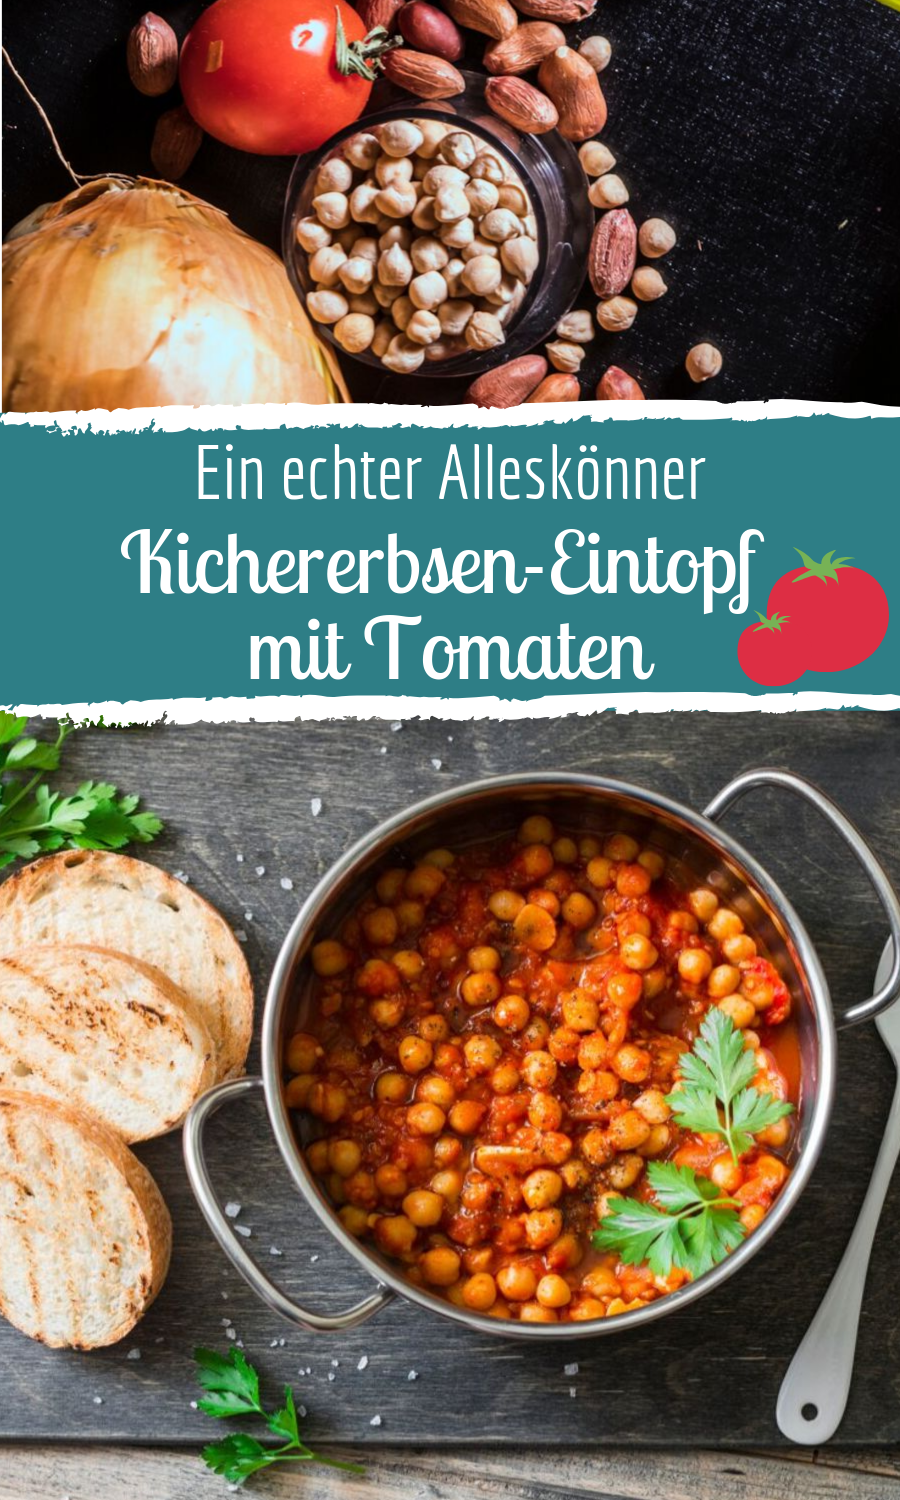 Photo of Kichererbsen-Eintopf mit Tomaten